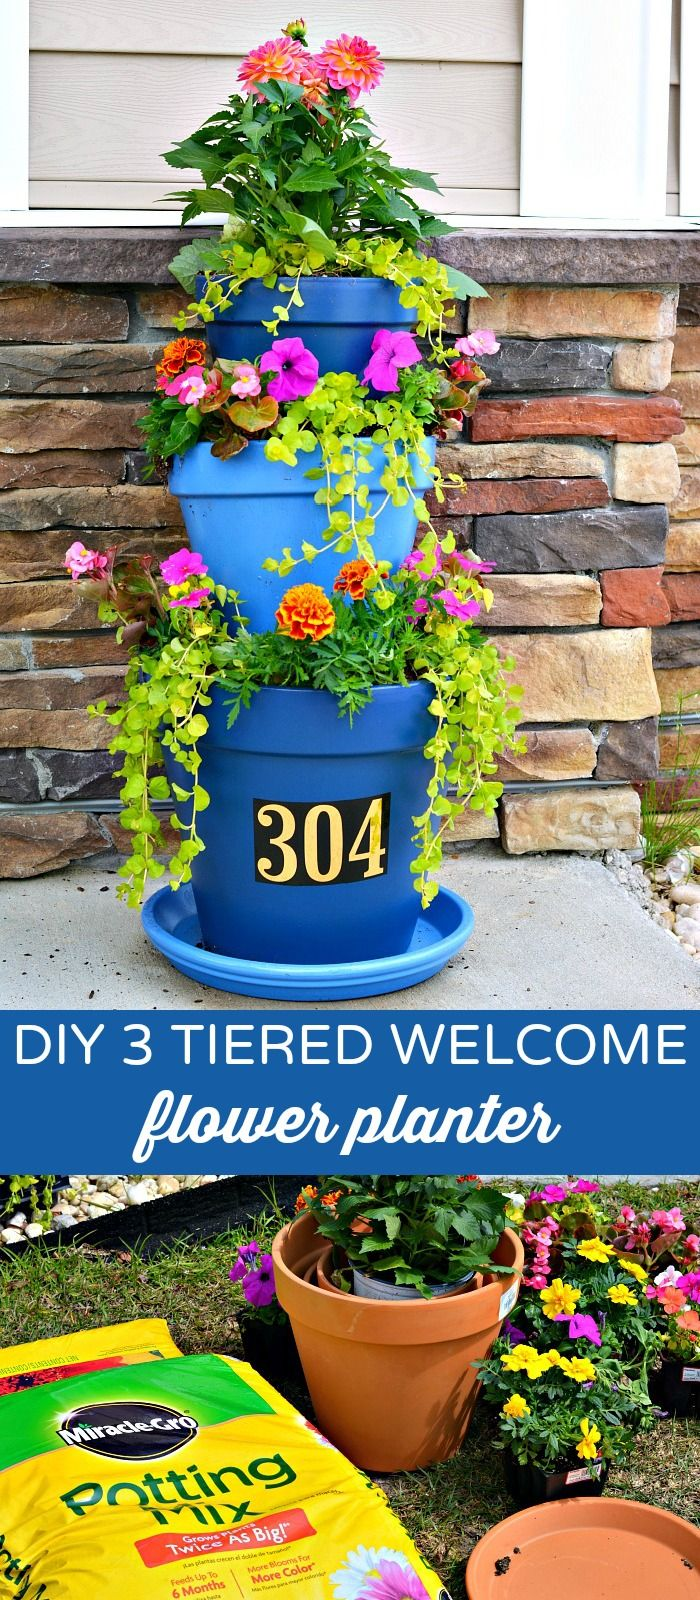 DIY 3 Tiered Flower Pot Planter-this with a verse instead of address would be cute & DIY 3 Tiered Flower Pot Planter-this with a verse instead of address ...